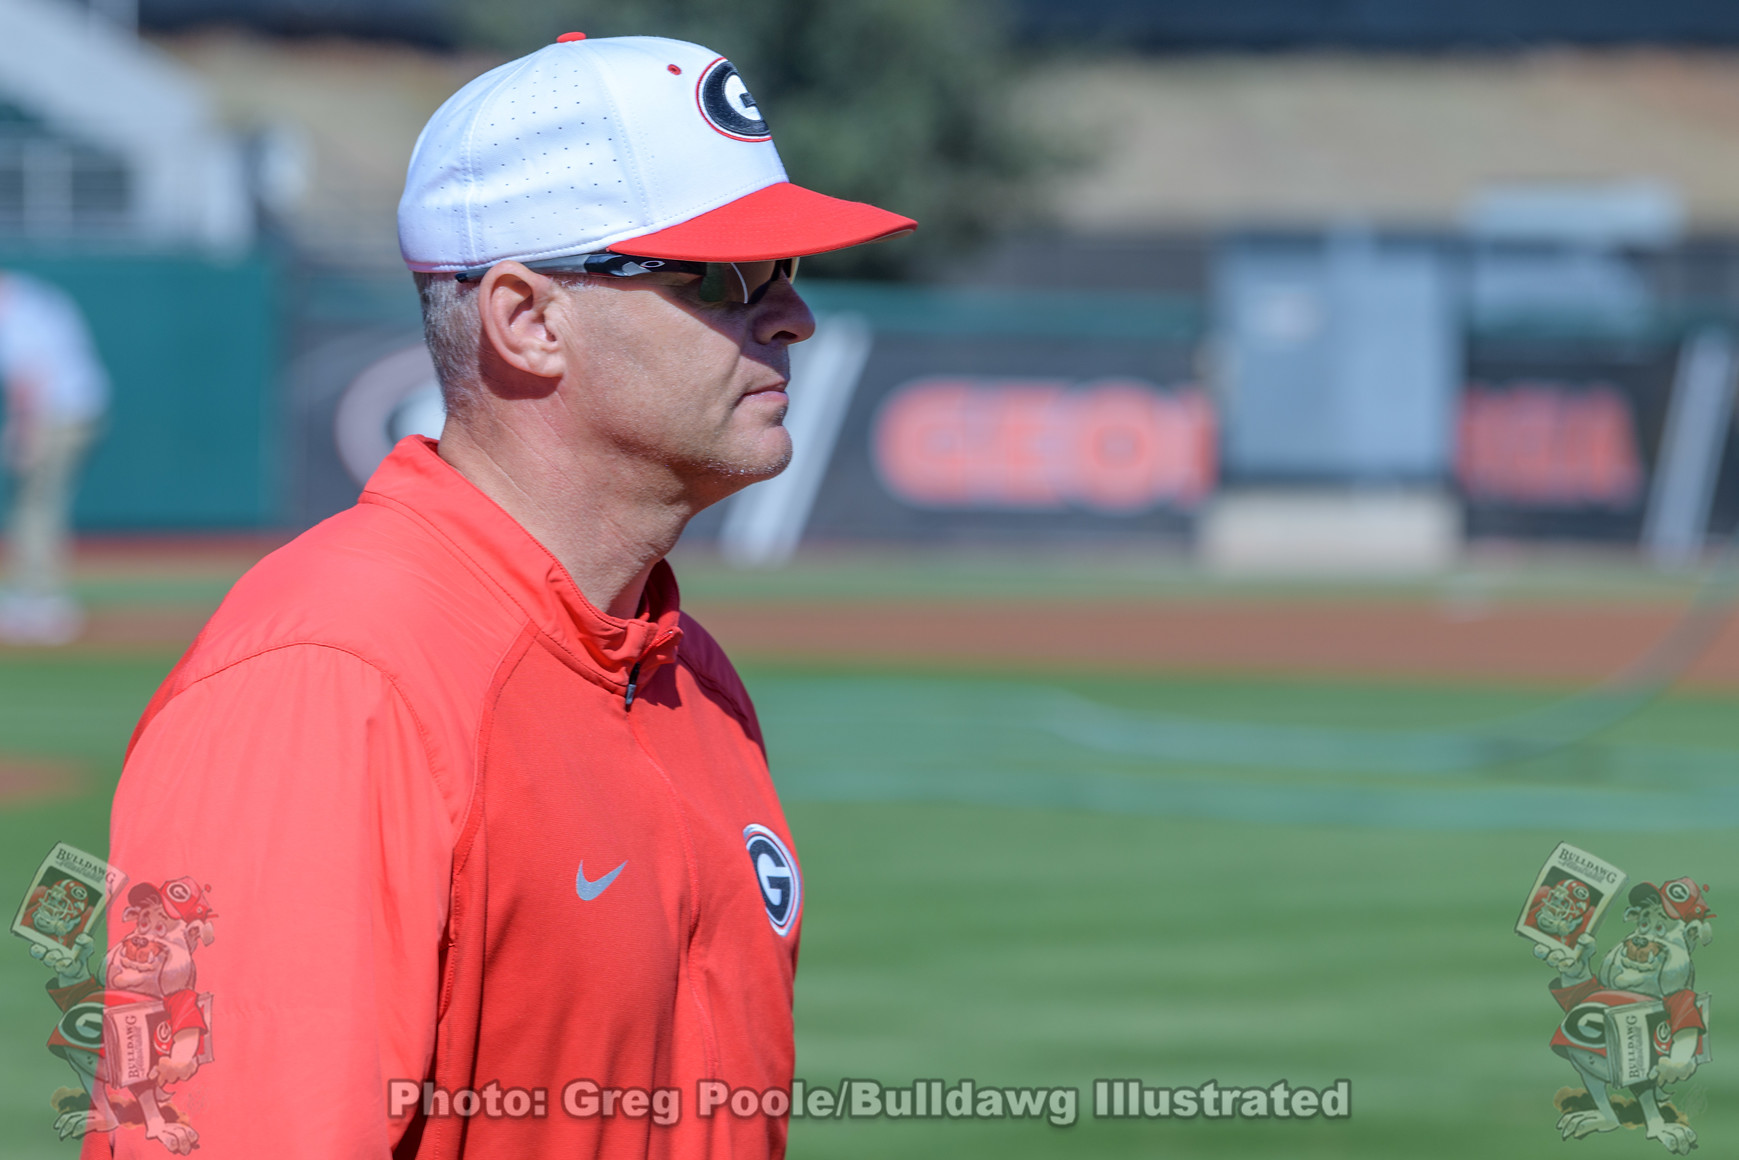 Scott Stricklin